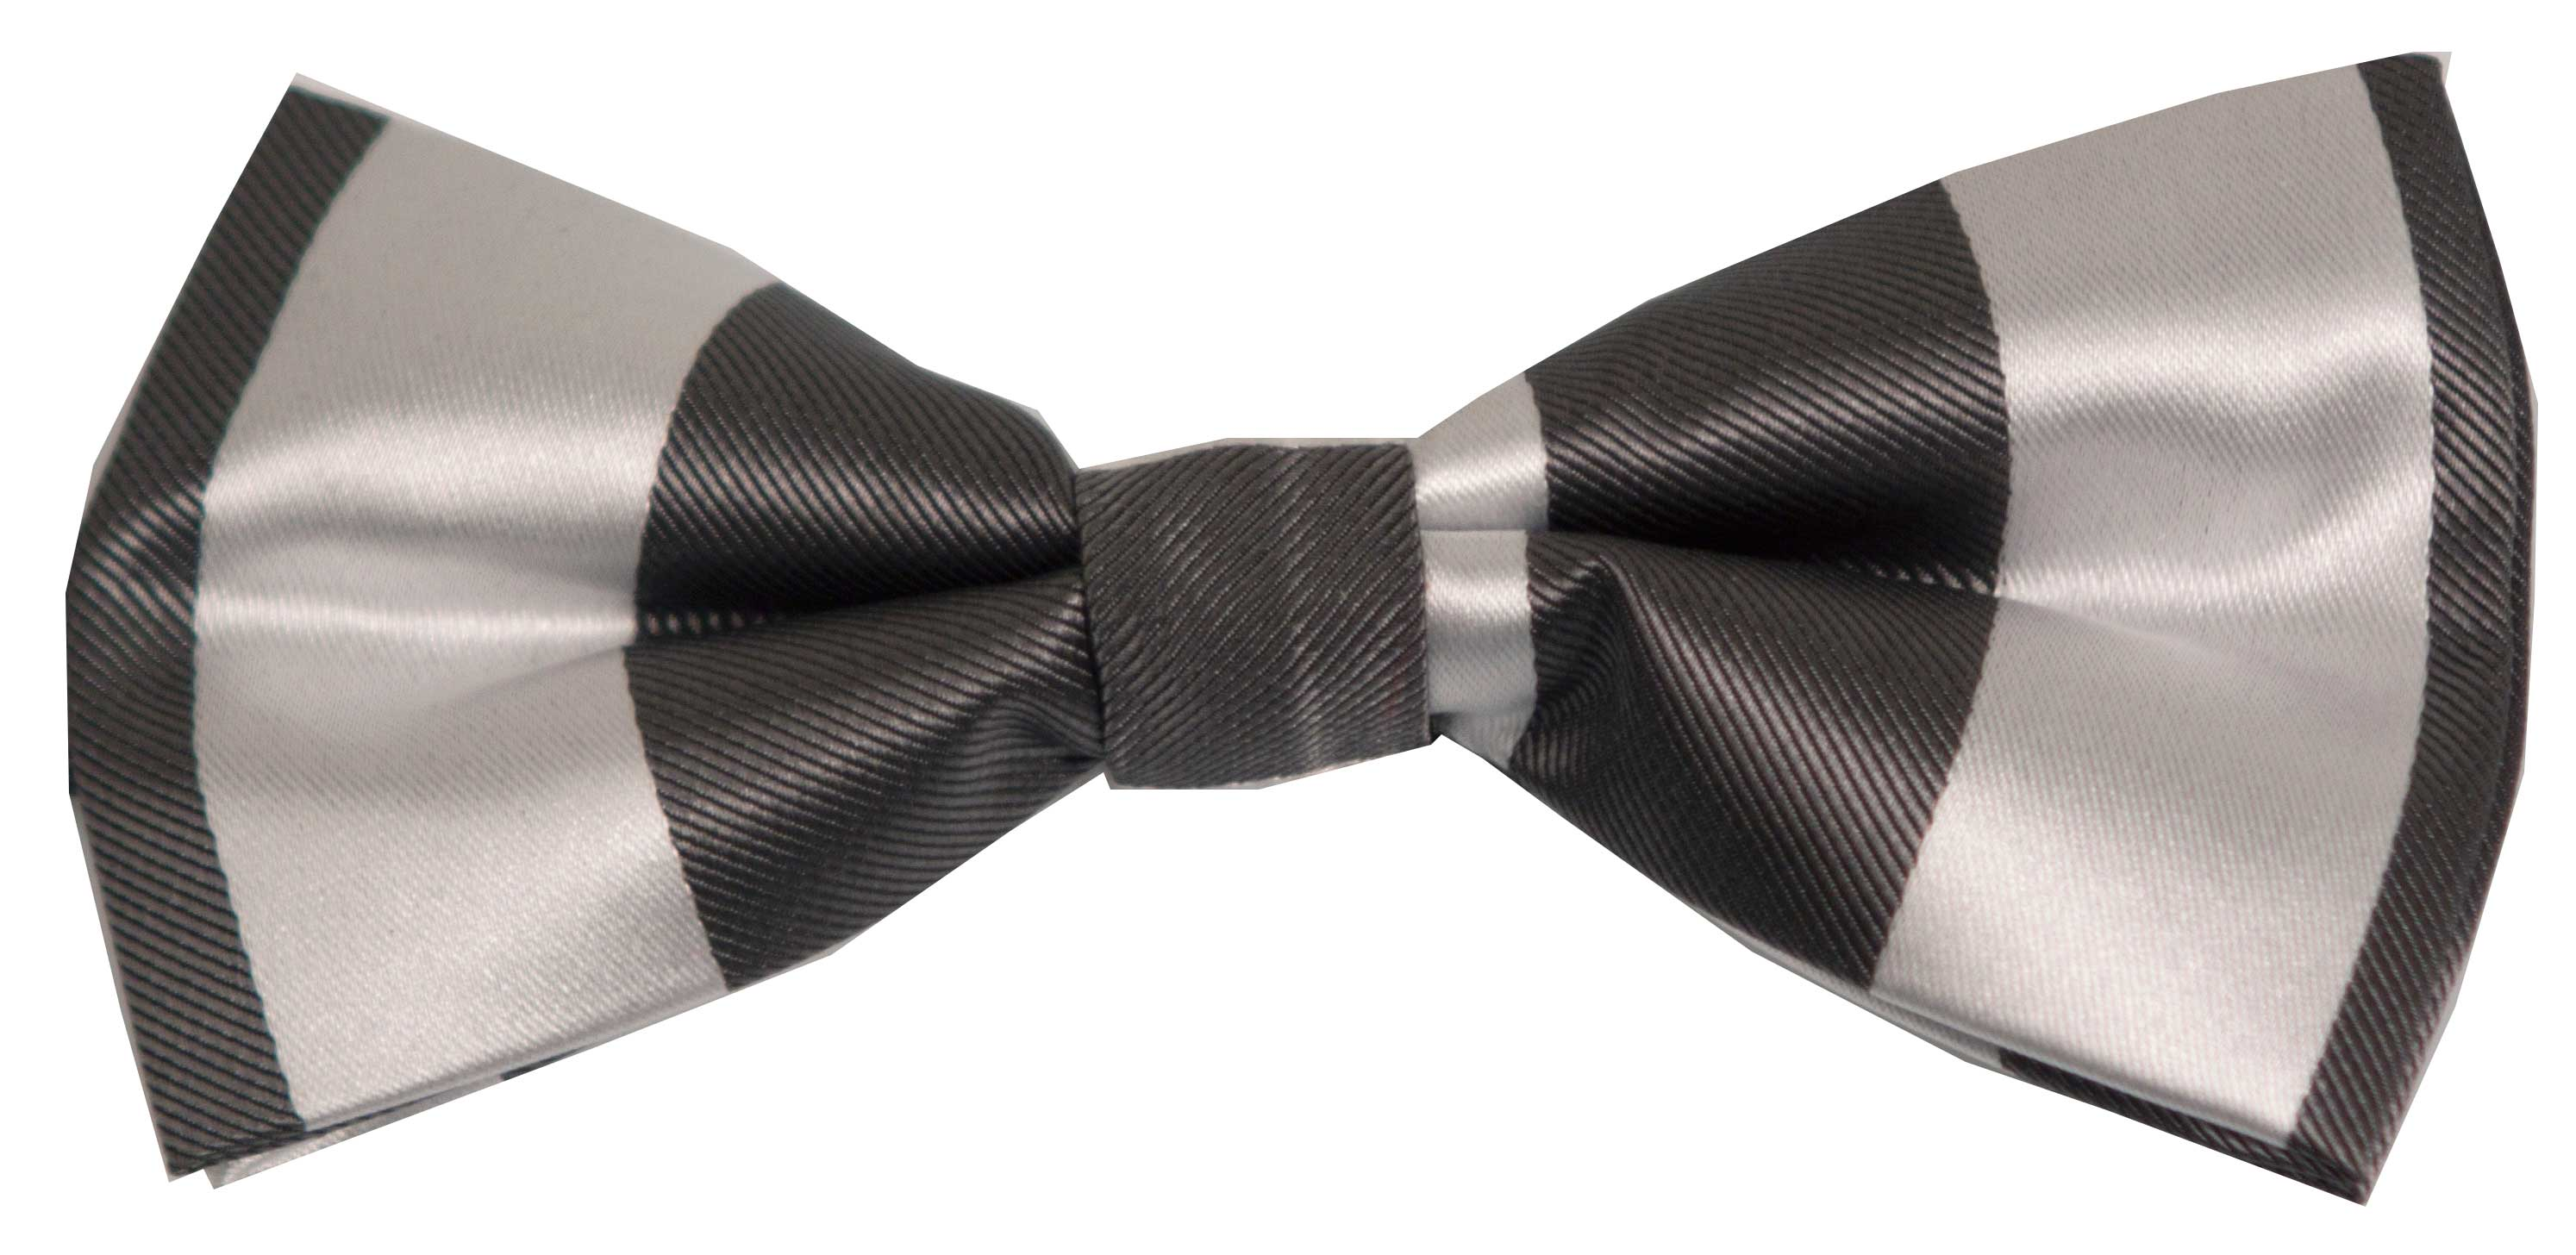 Bow tie (grey striped)